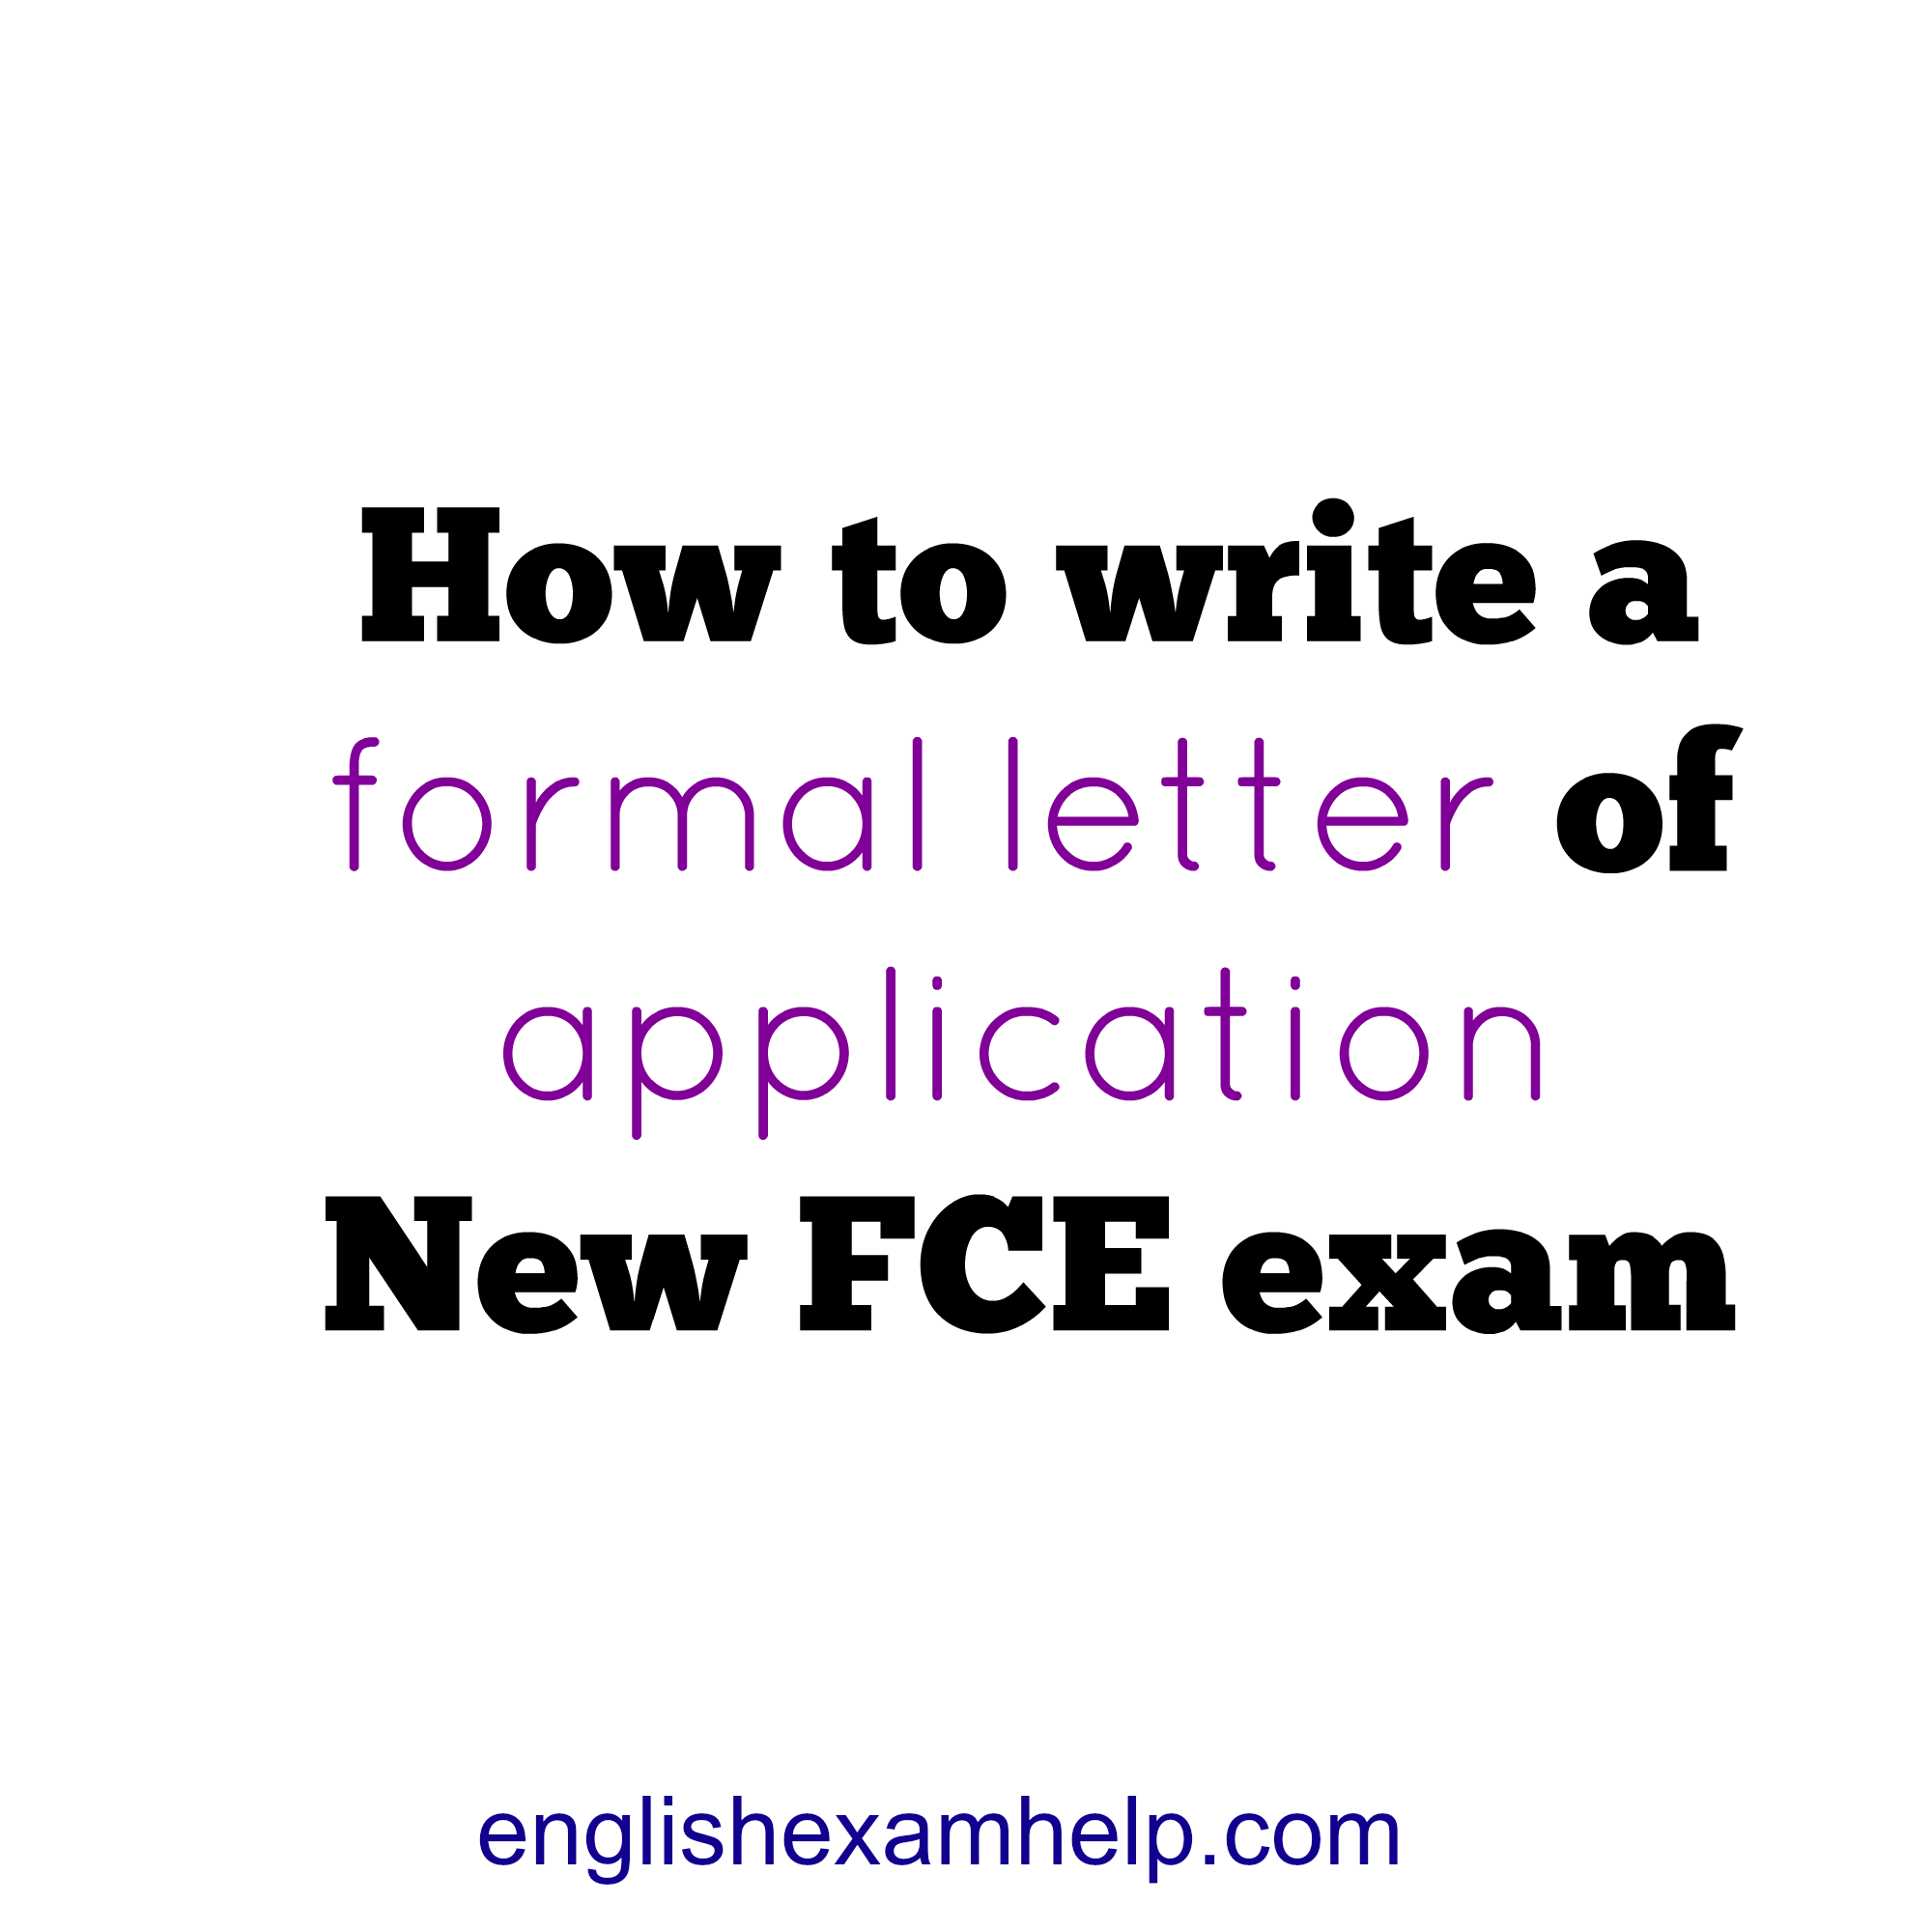 how to write a formal application letter for new fce exam how to write a formal application letter for new fce exam english exam help